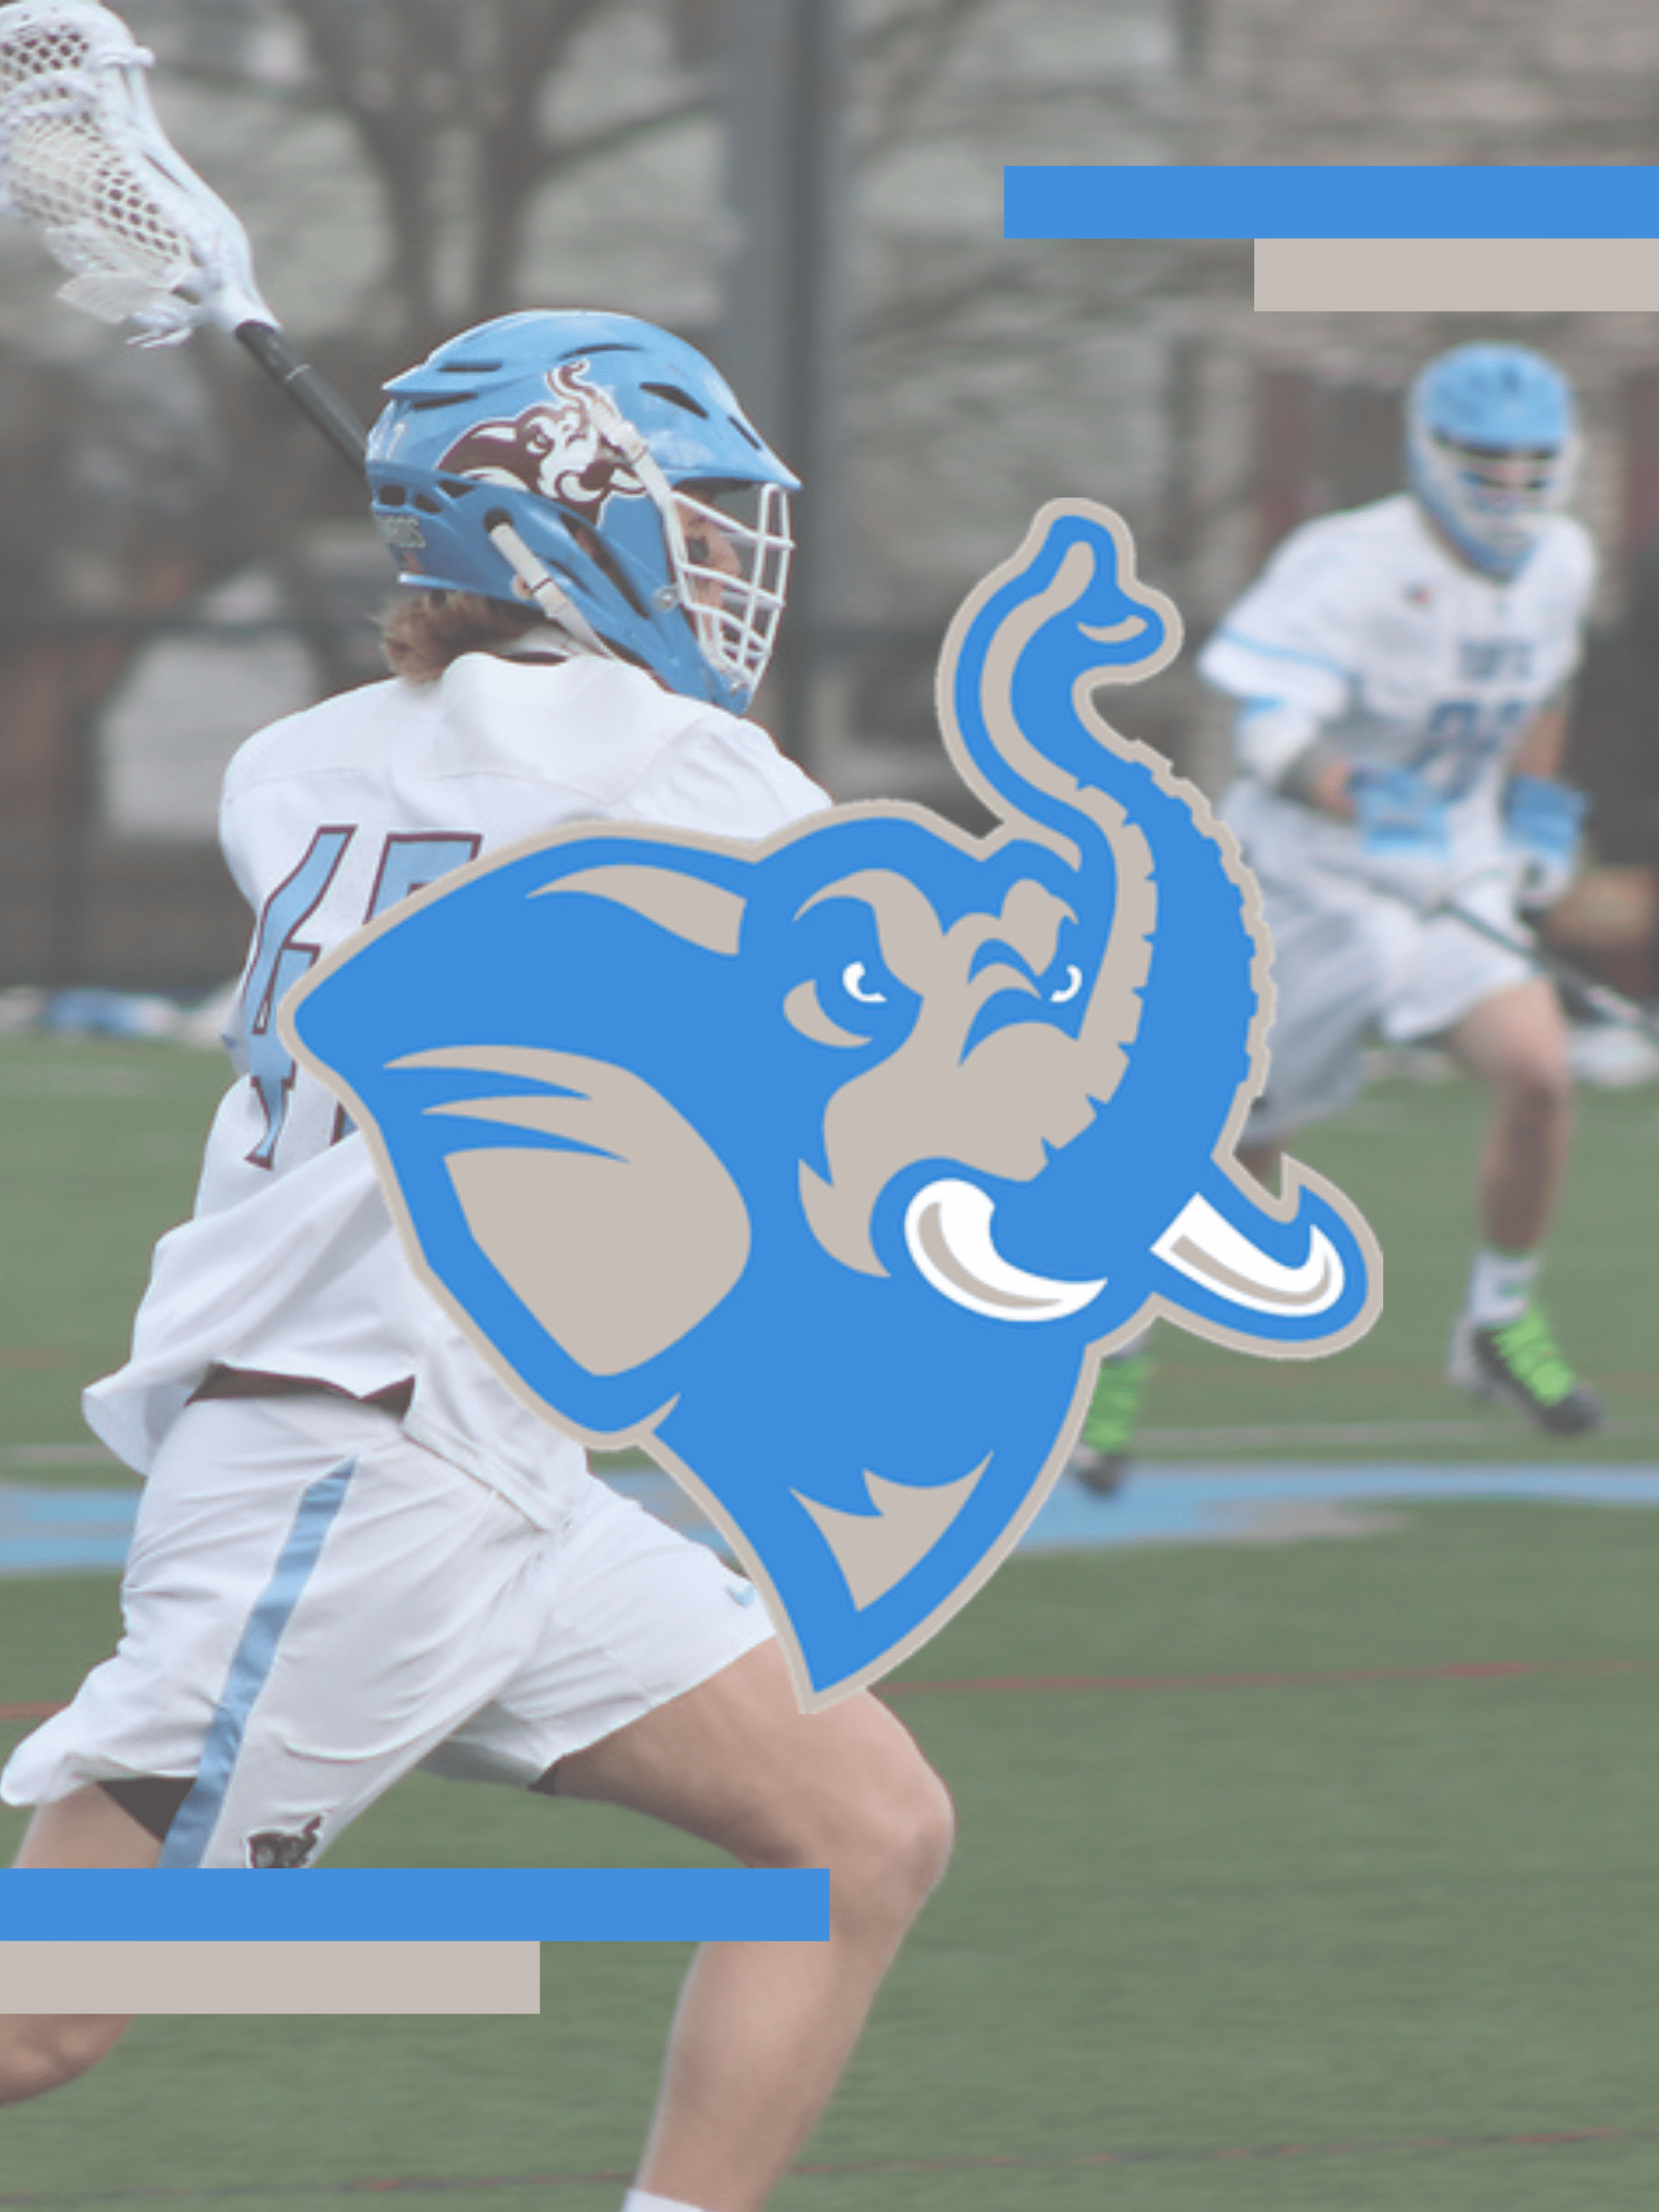 In DII men's lacrosse, Wingate pulled off a huge win in a nail biter, and in DIII men's lax, the Jumbos made a statement late in the year.